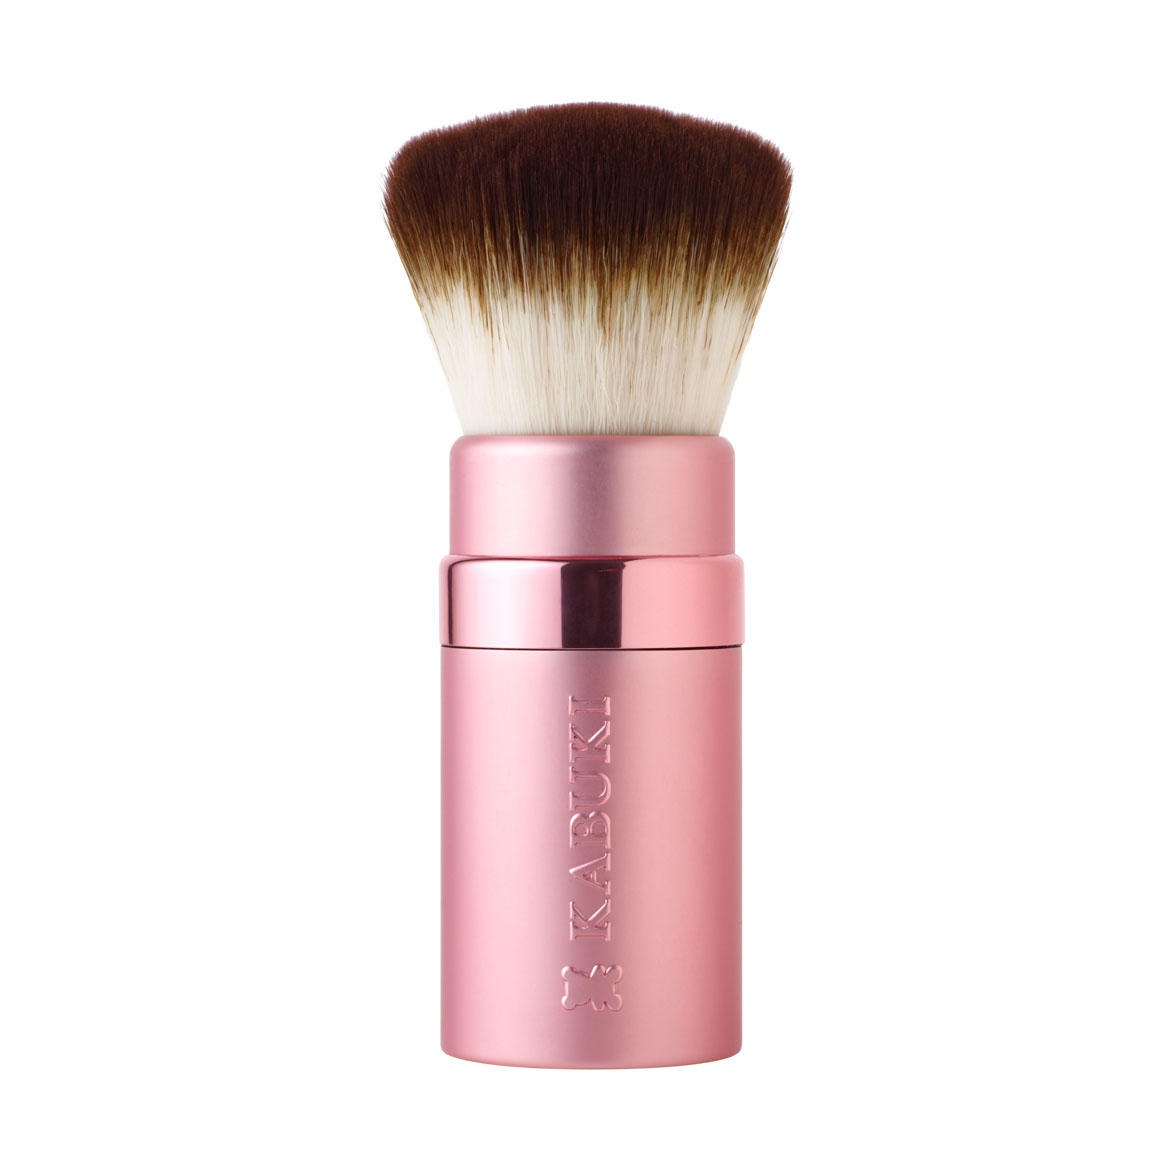 Too Faced Special Edition Retractable Kabuki Brush